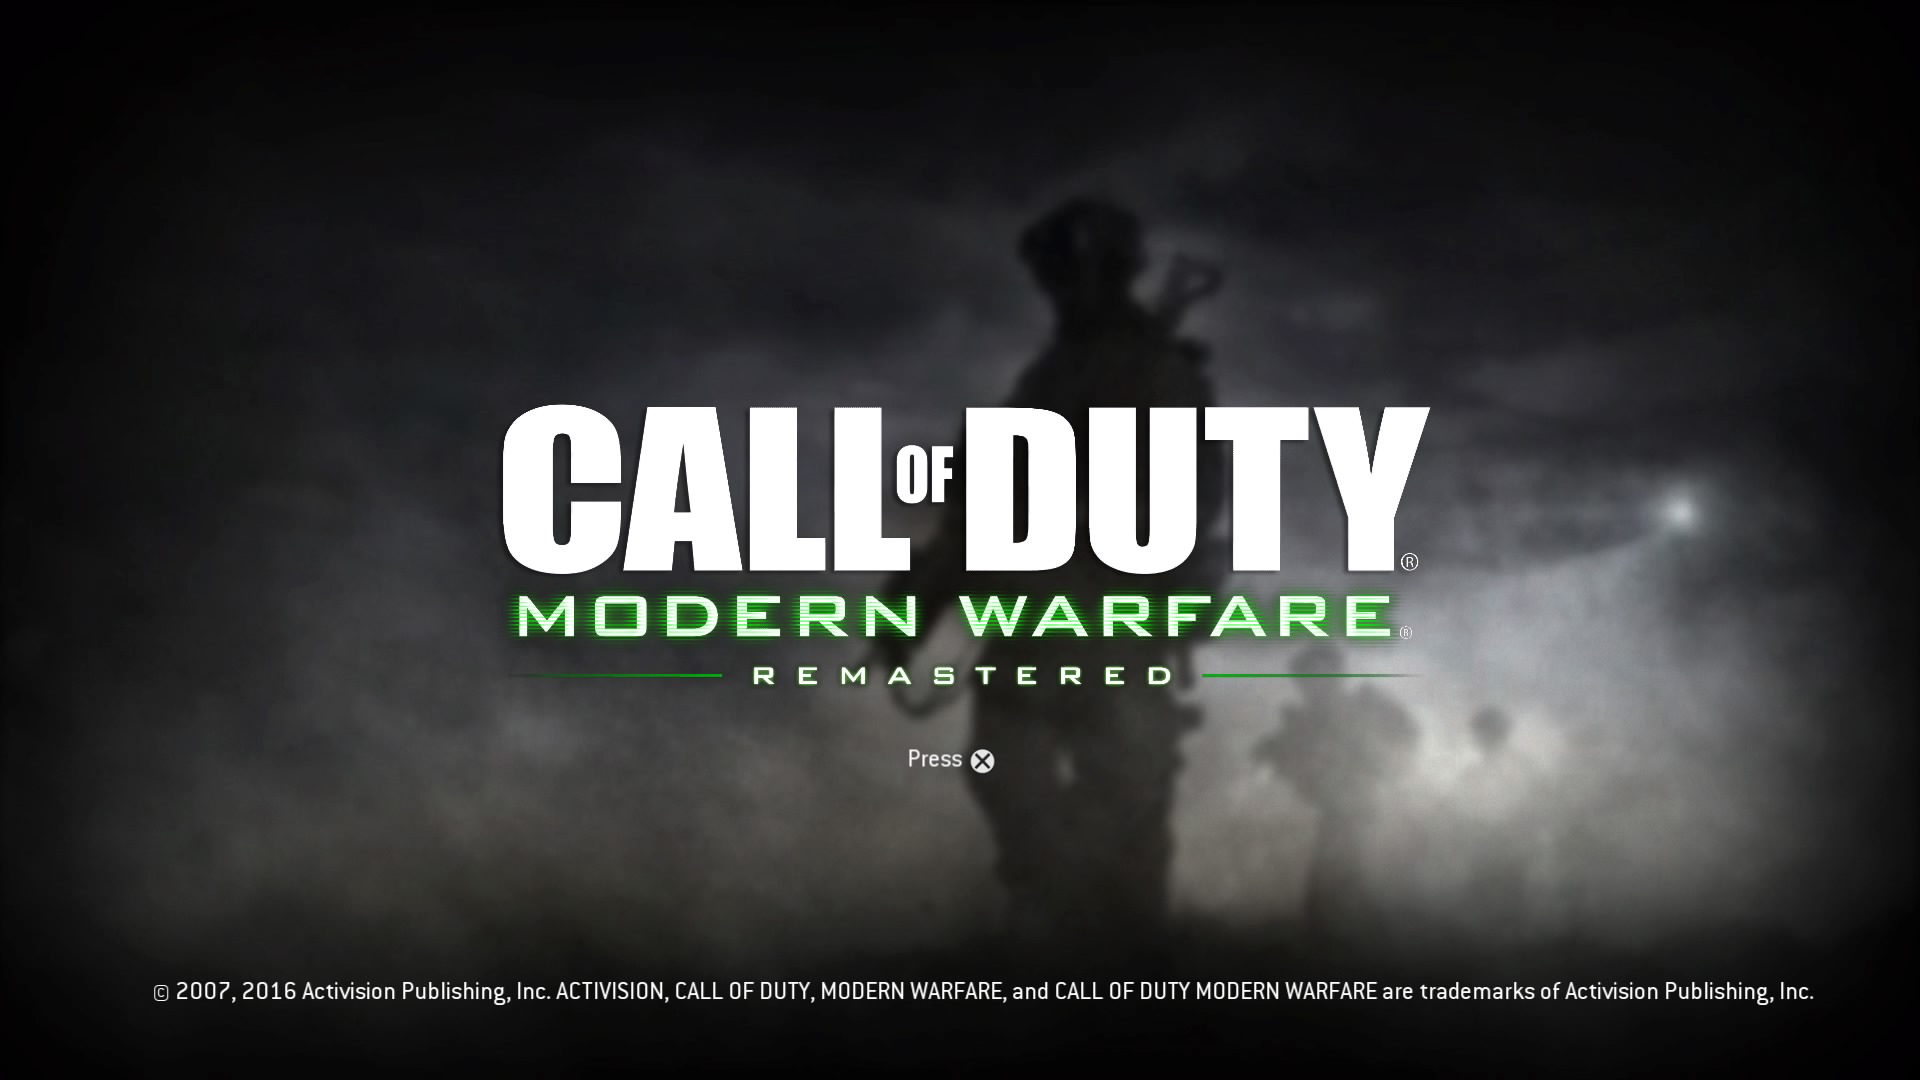 Call of Duty: Modern Warfare Remastered PS4 title